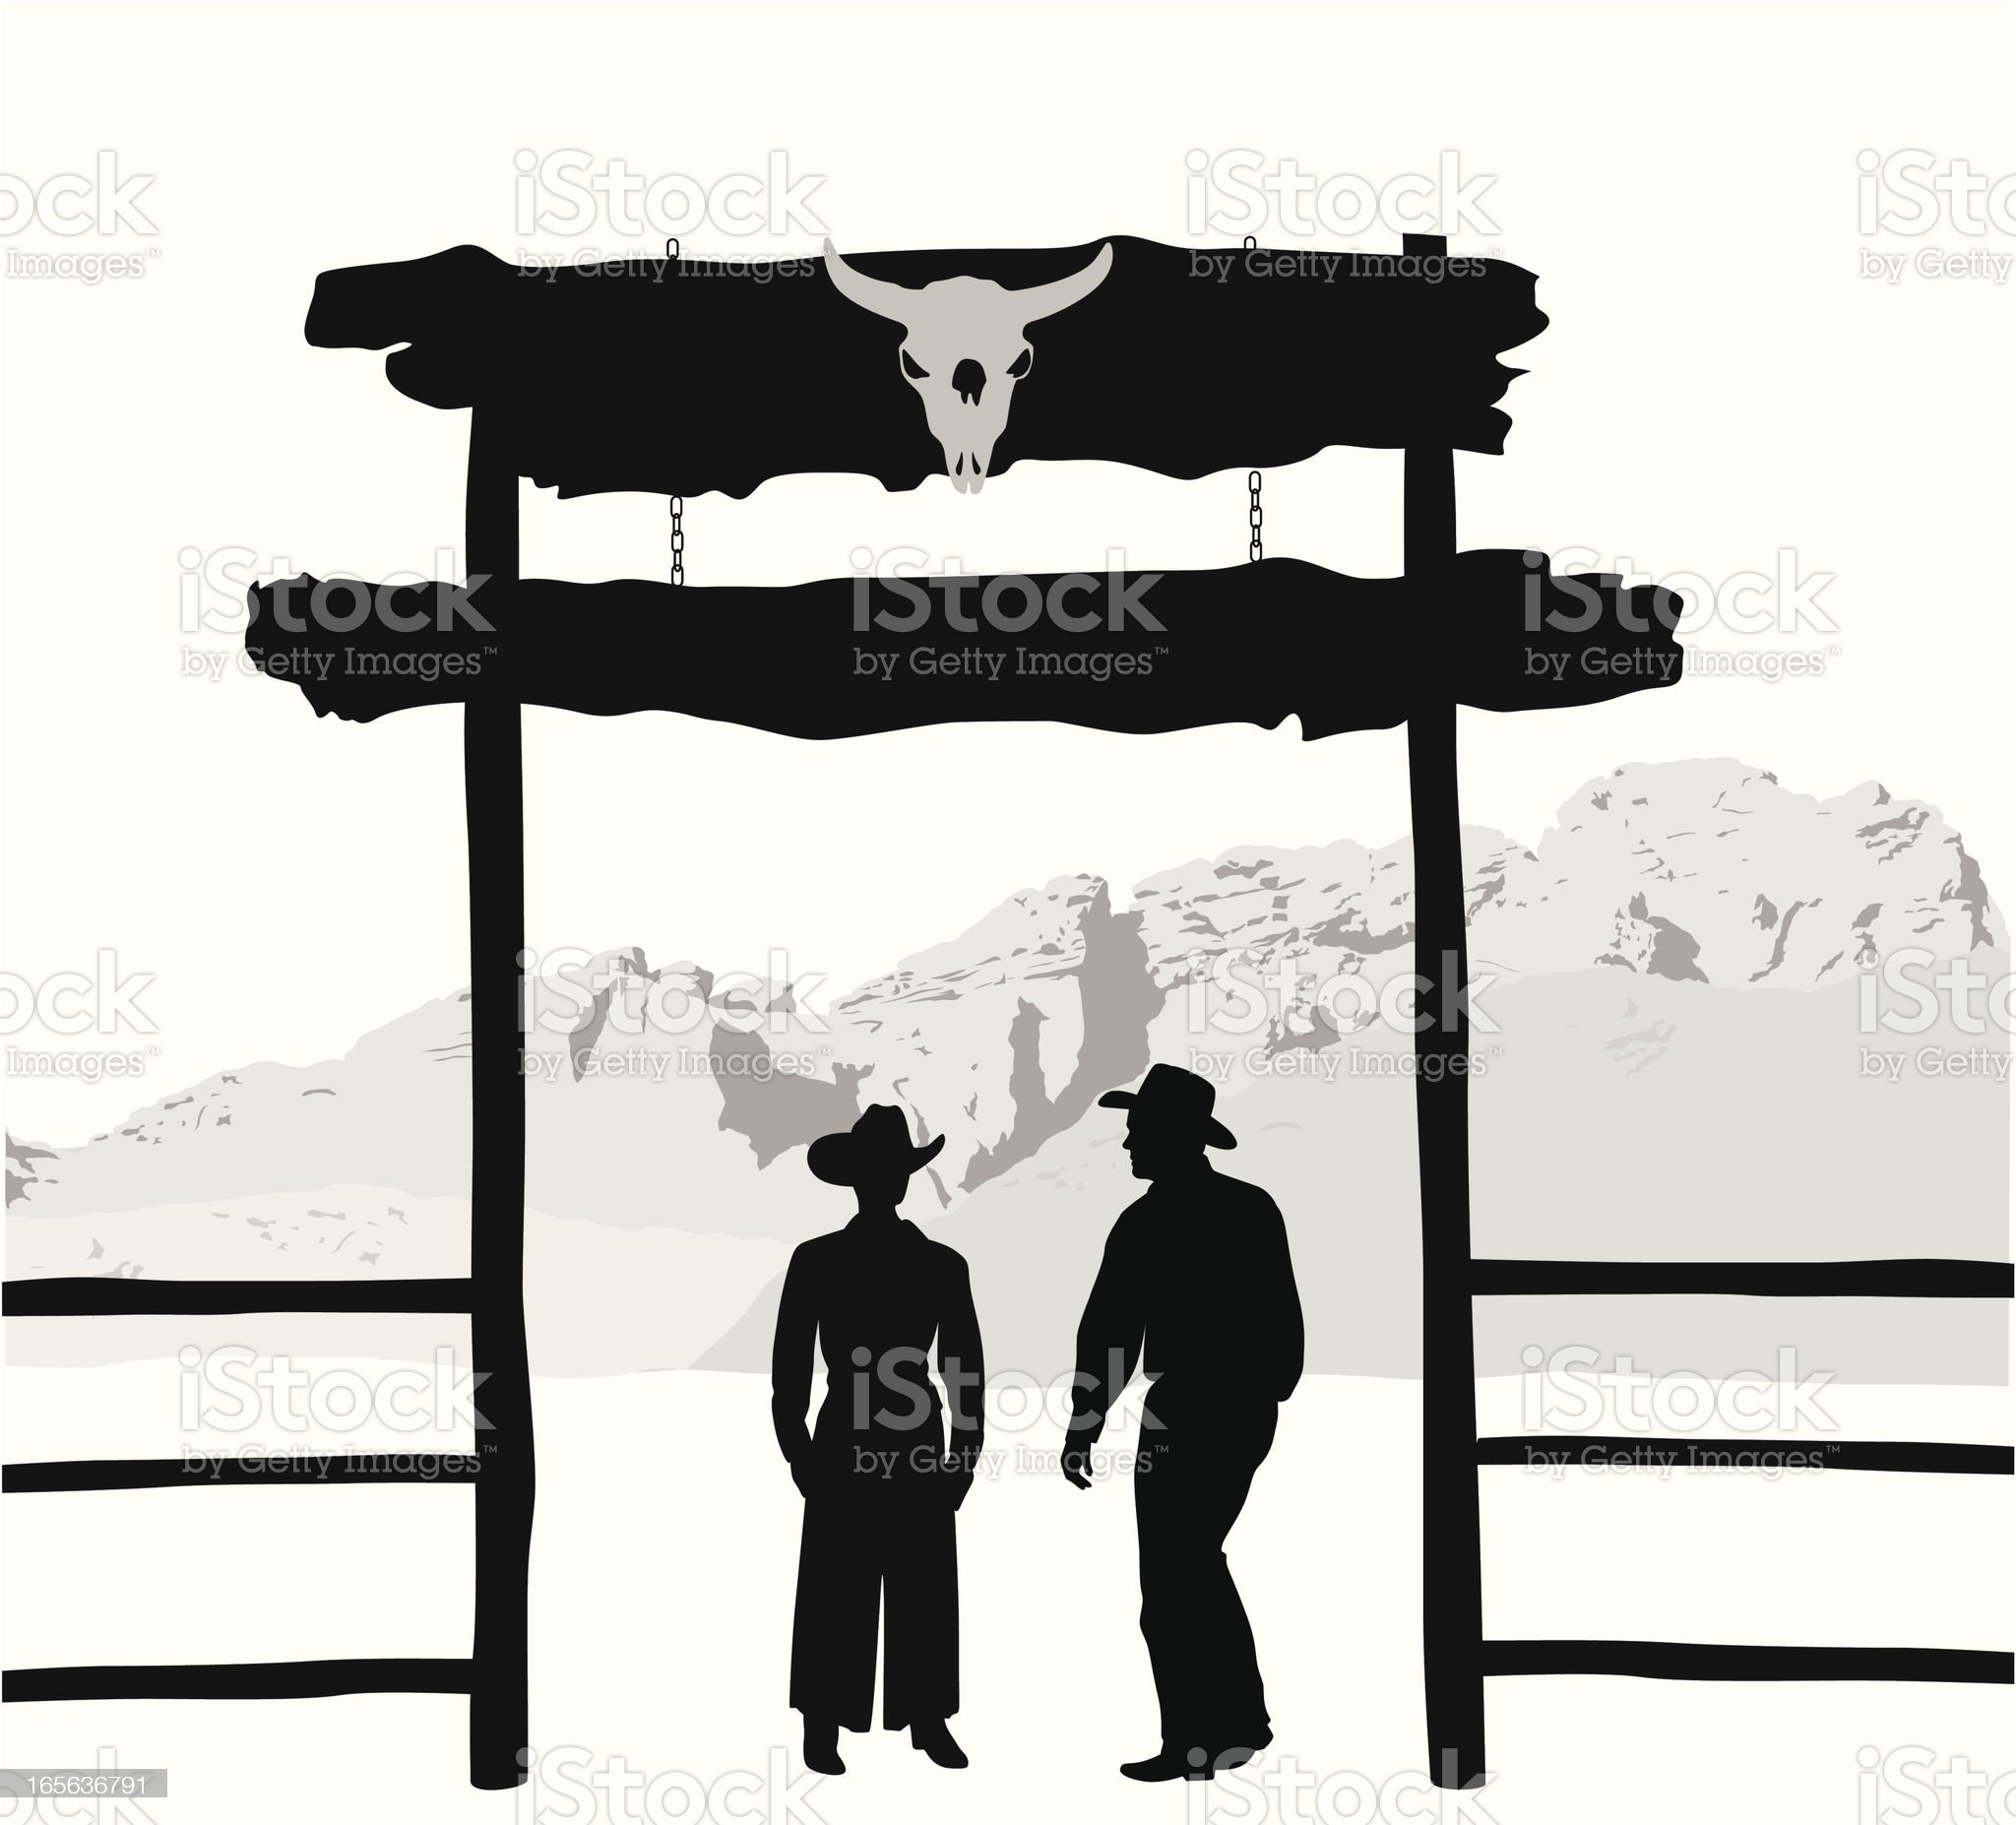 Ranchers Vector Silhouette royalty-free stock vector art